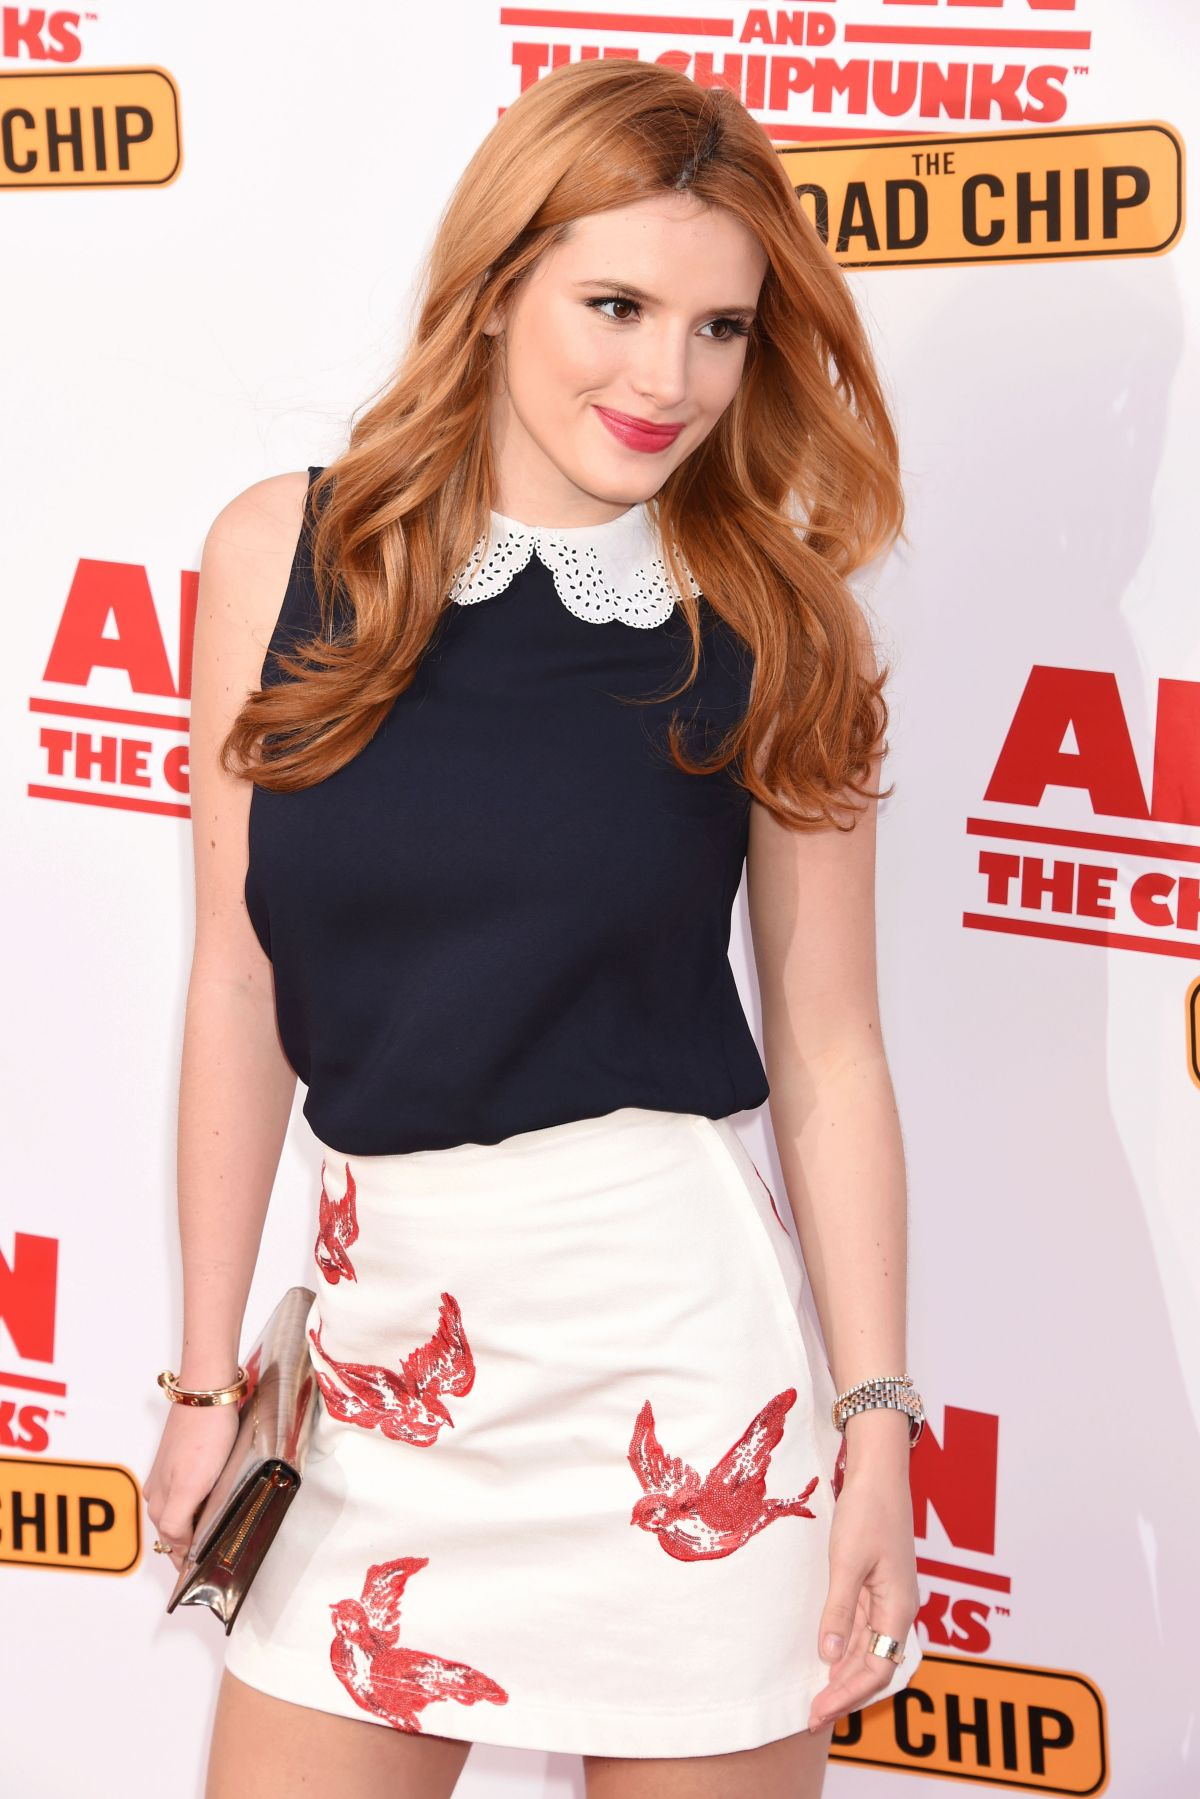 BELLA THORNE at Alvin and Chipmunks:  The Road Trip Screening in Los Angeles 12/12/2015